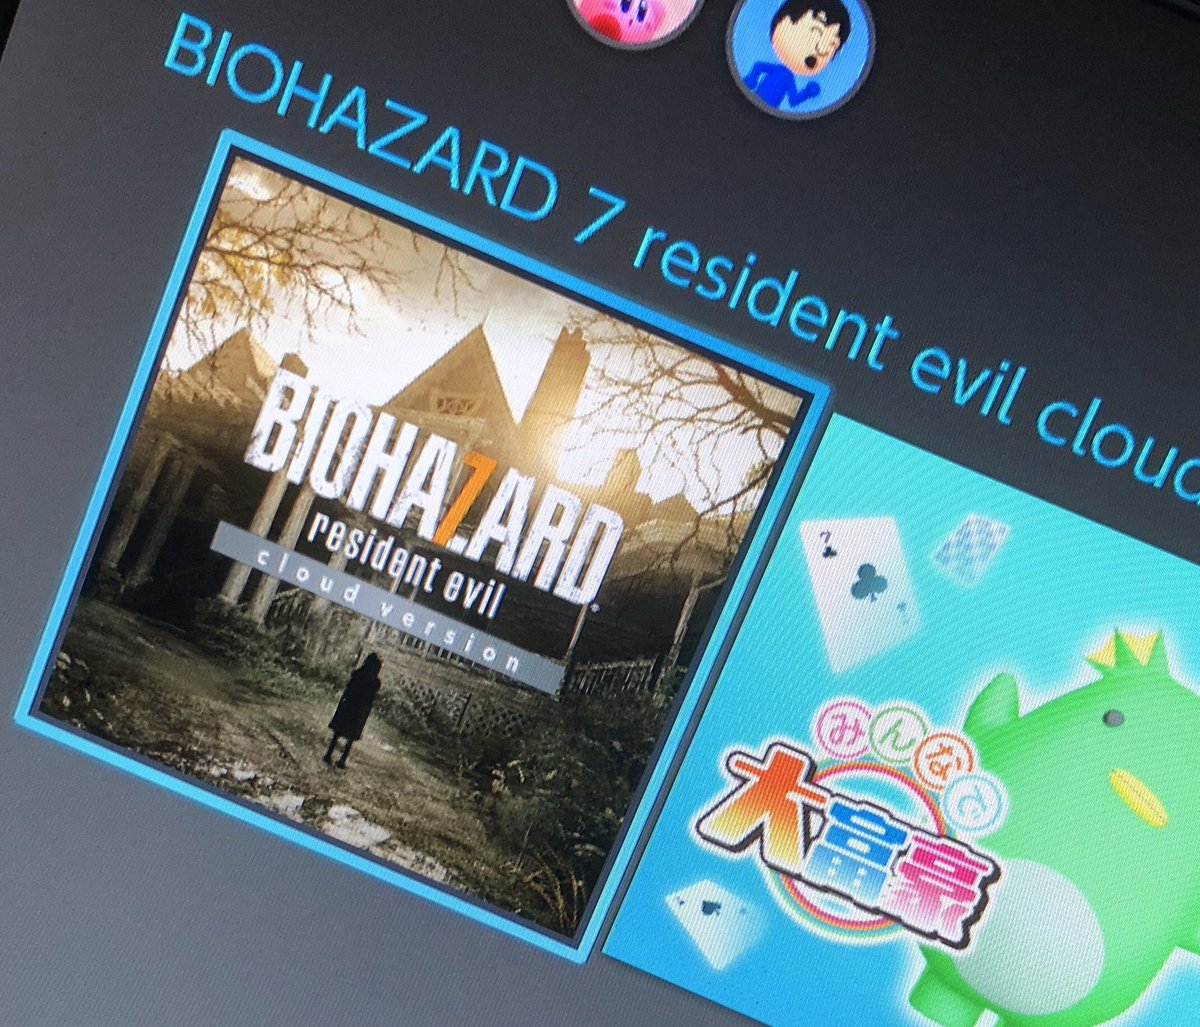 Resident Evil 7 Cloud Version Now Available On Japanese Nintendo